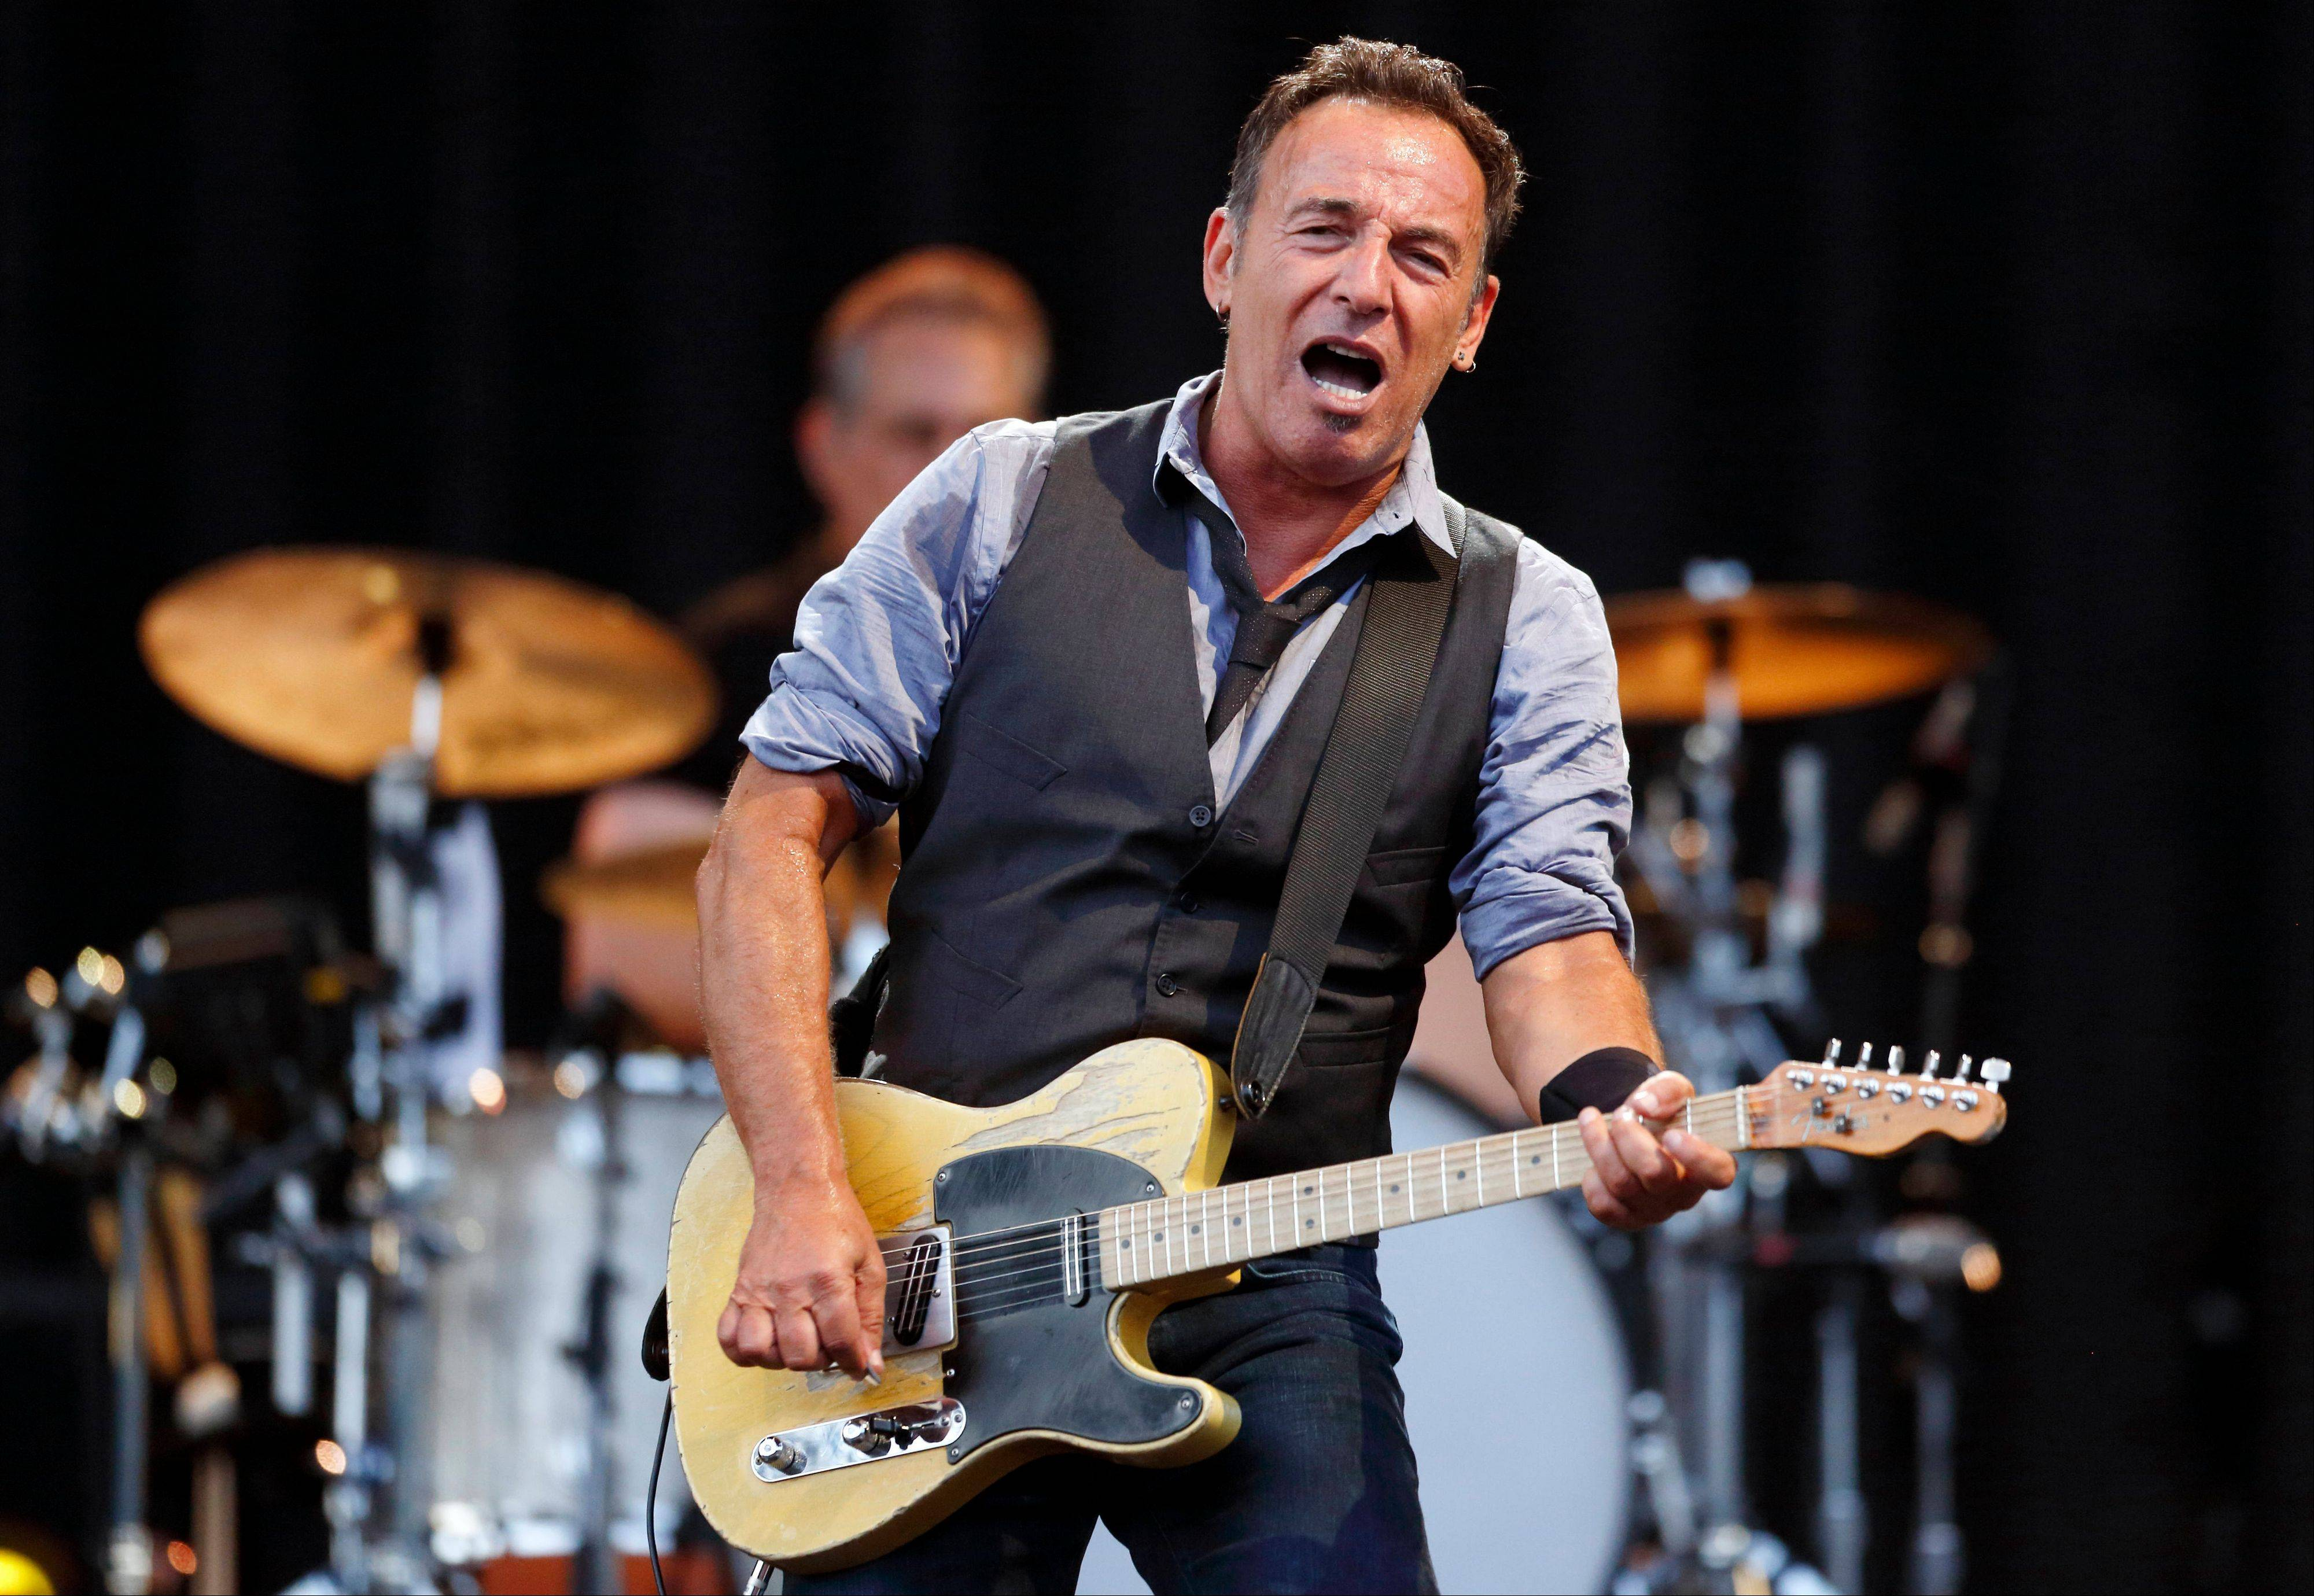 Bruce Springsteen and Jon Bon Jovi of New Jersey and Billy Joel of Long Island are scheduled to appear Friday at a benefit concert for victims of superstorm Sandy.